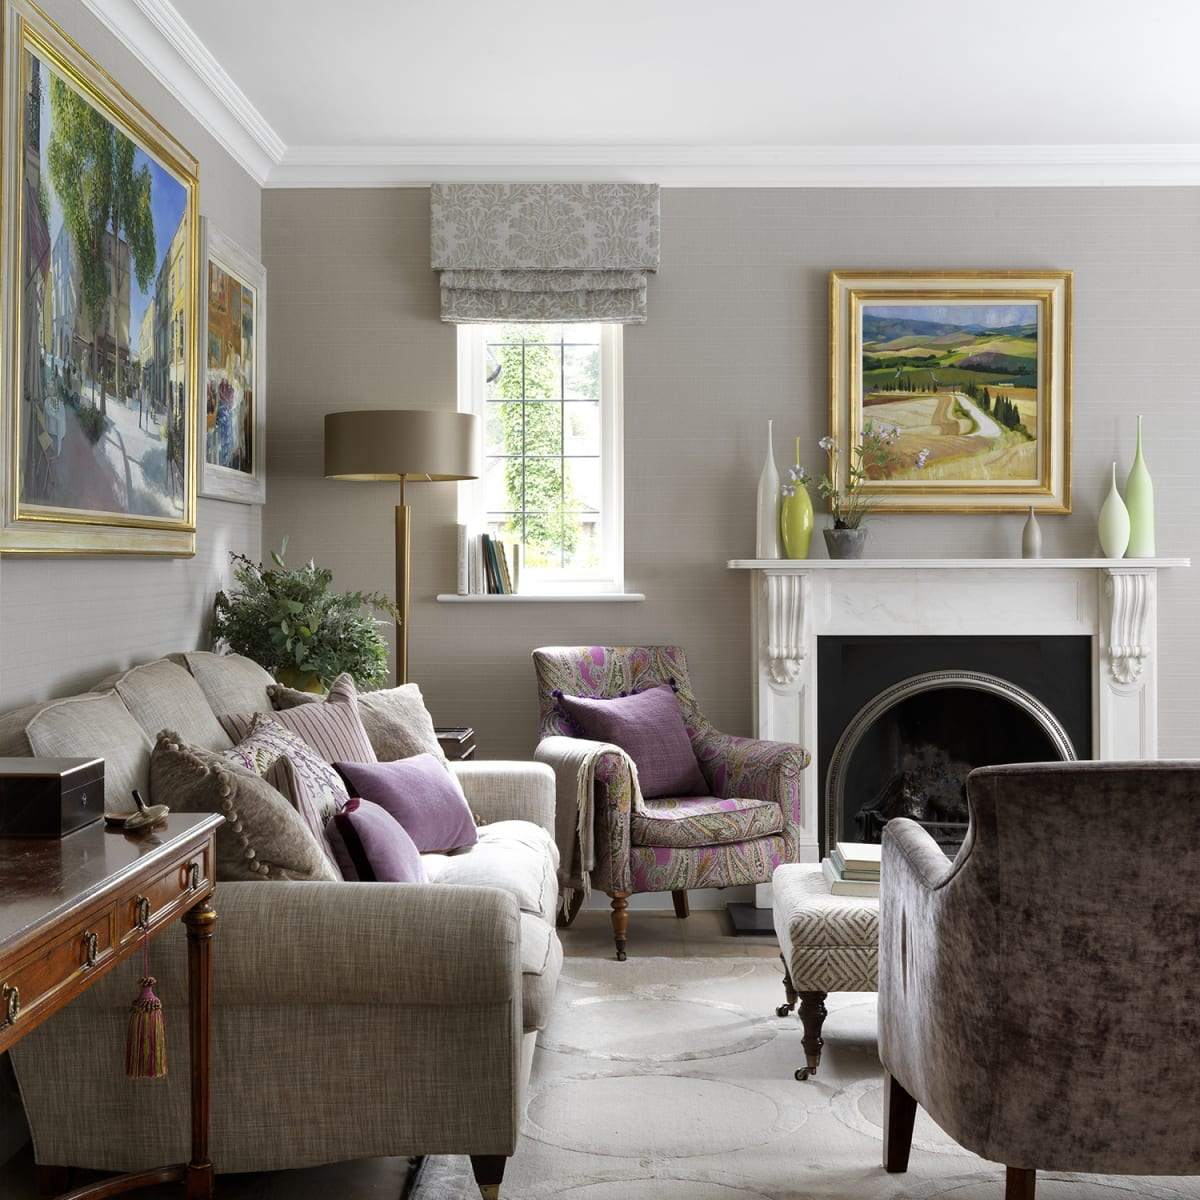 Sitting room interior with soft palette featuring work by Jack Morrocco